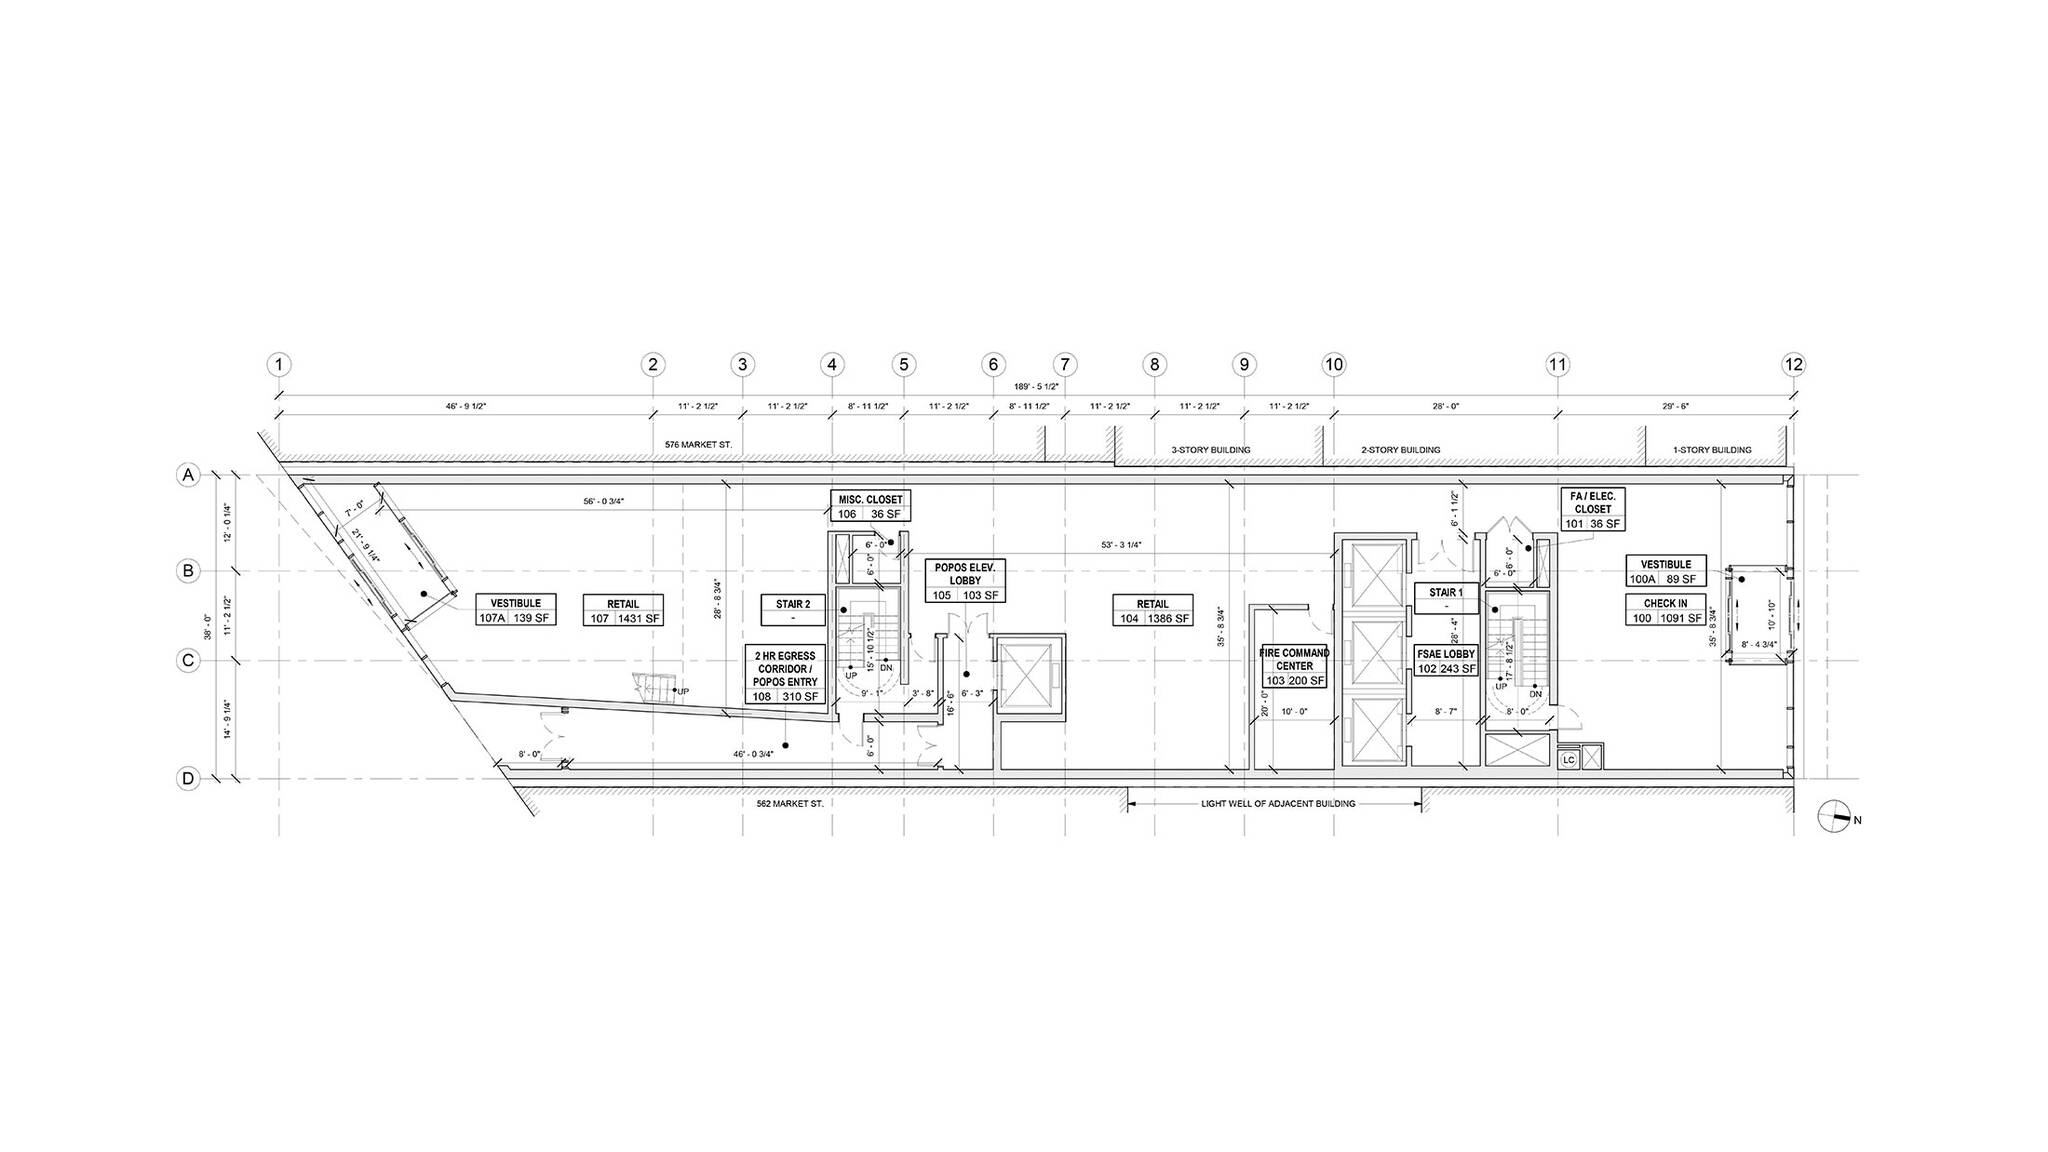 Mechanical plan of the lobby of the San Francisco modular project located at 570 Market Street on the Financial District of San Francisco, California designed by the architecture studio Danny Forster & Architecture